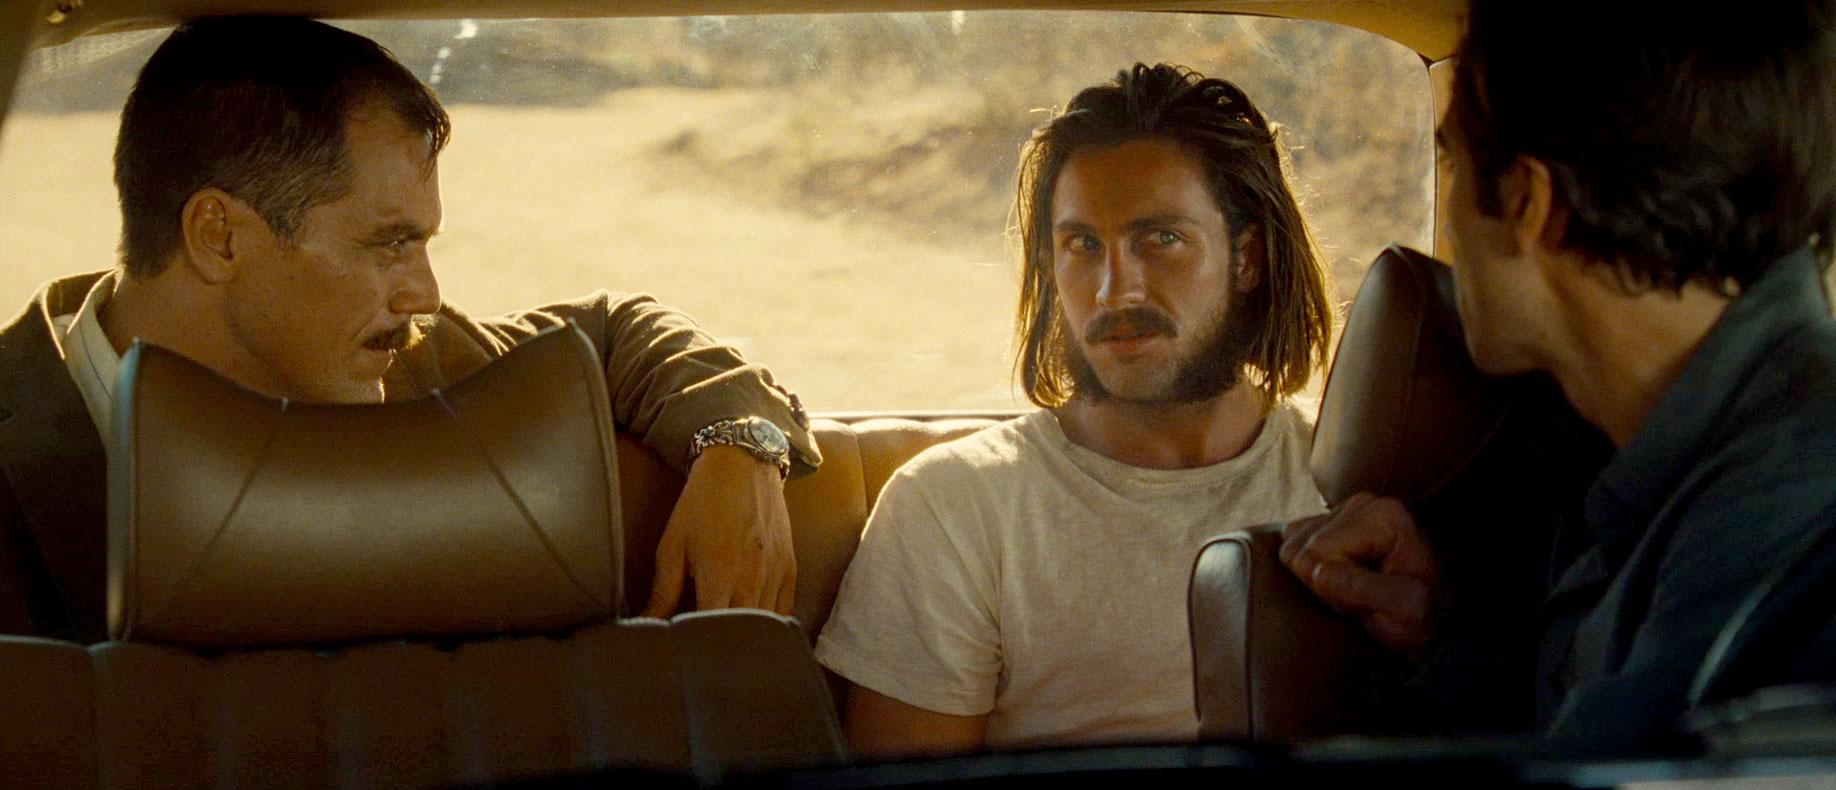 Resultado de imagem para nocturnal animals movie aaron taylor-johnson